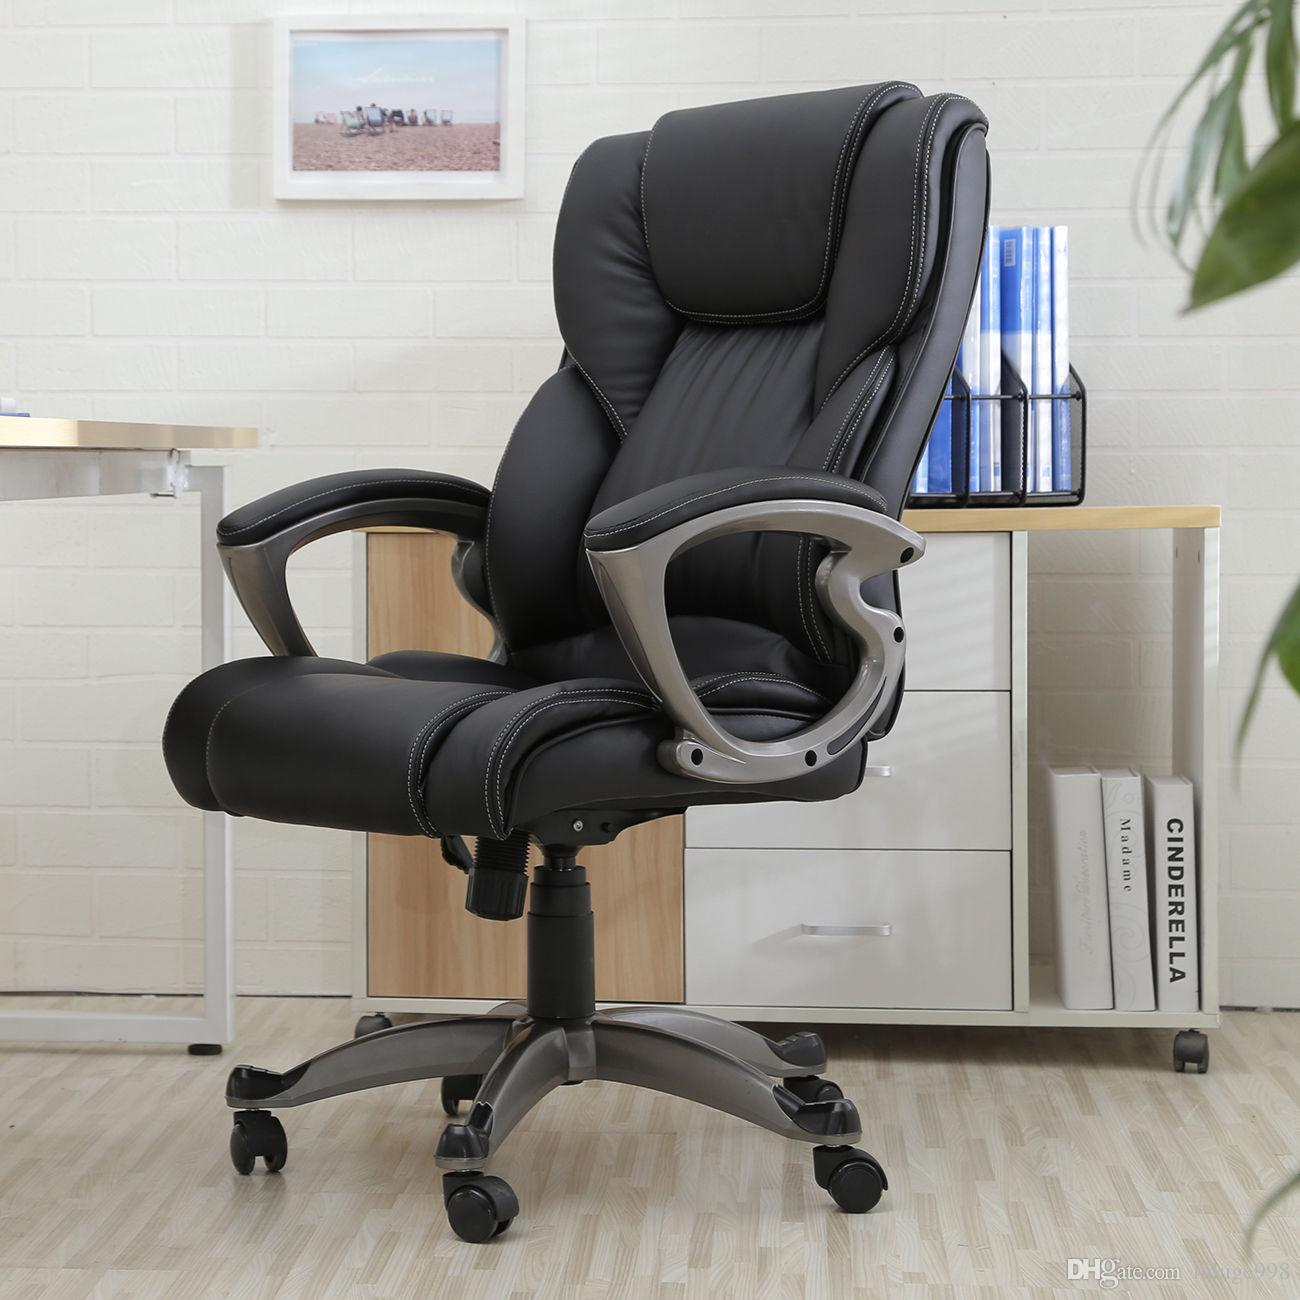 Executive Swivel Chairs Home Office Computer Desk Chairs Task Chair Leather Pu Furniture